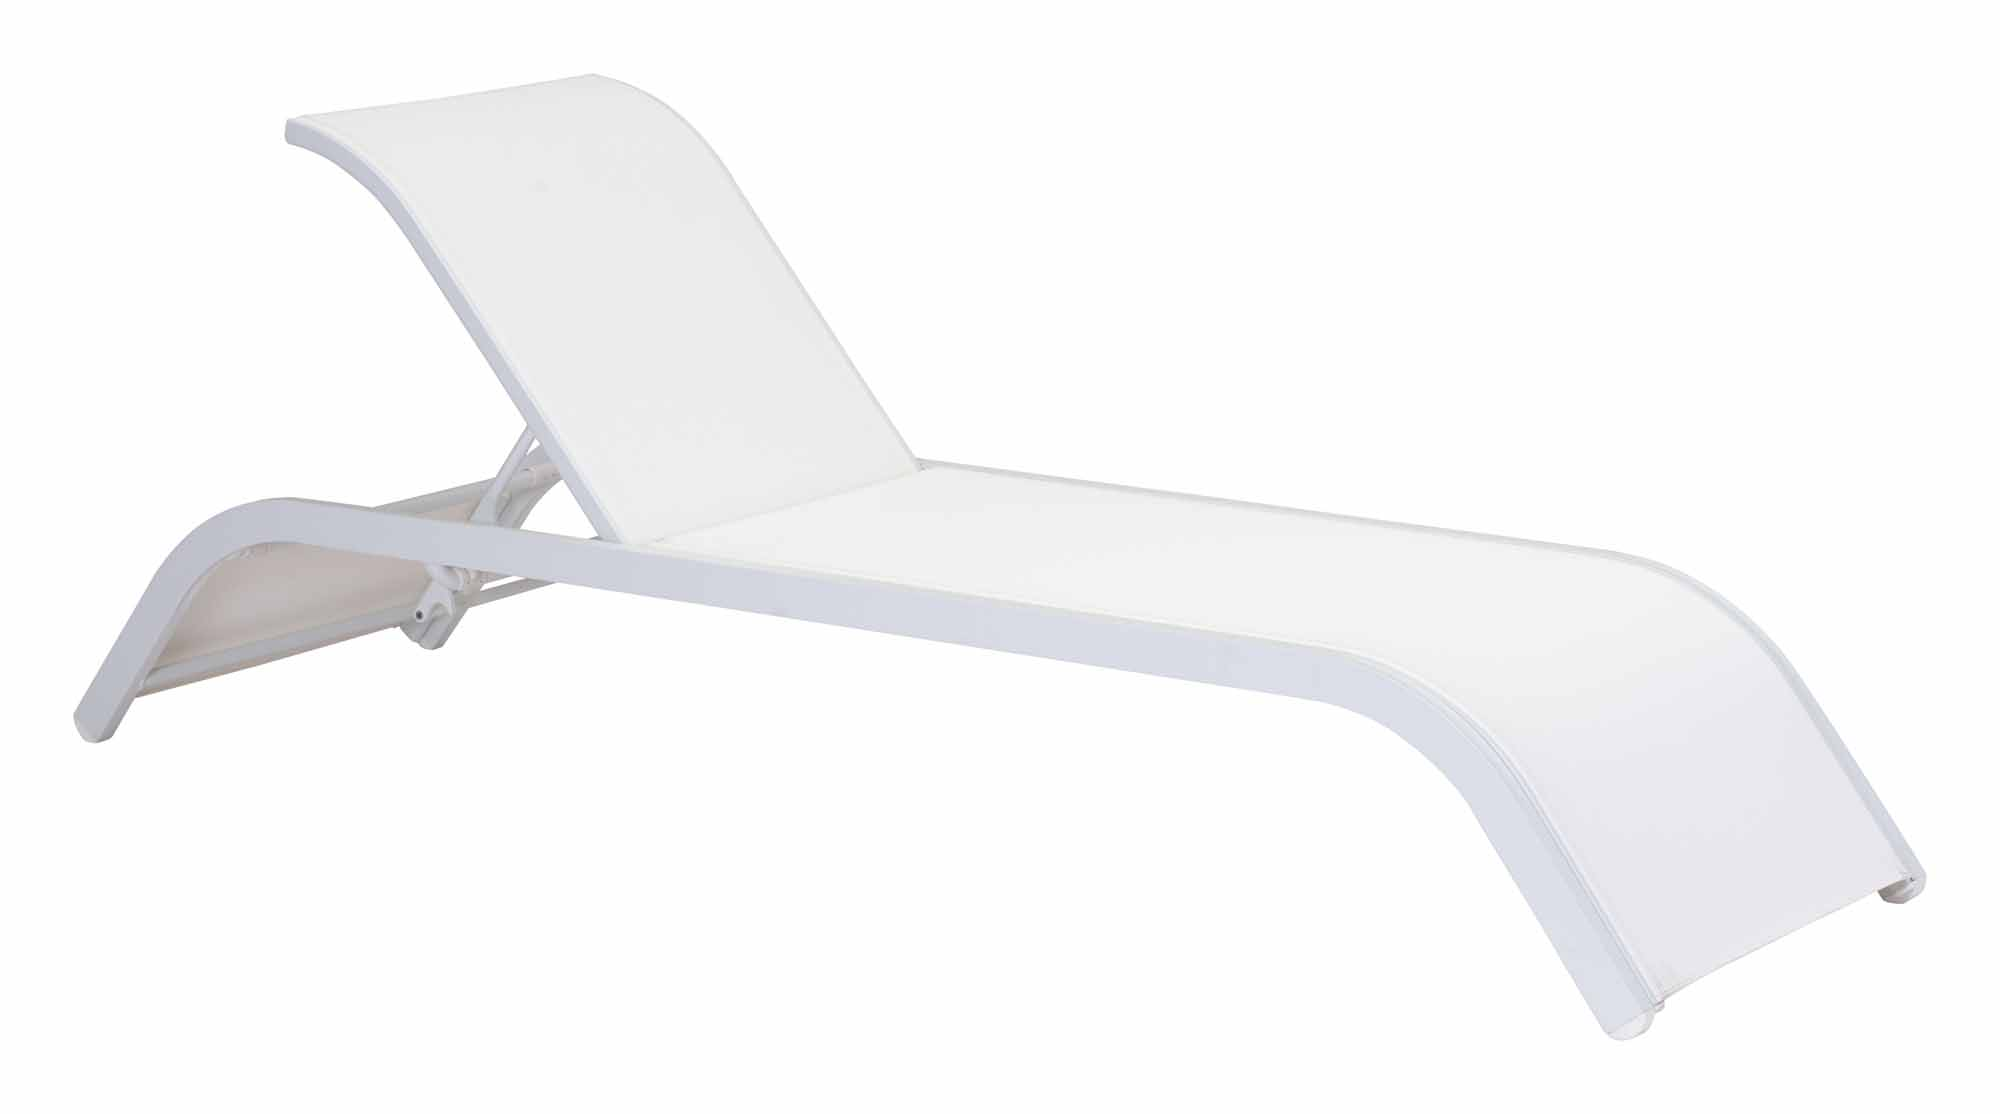 Sun beach chaise lounge white by zuo modern for Beach chaise lounge